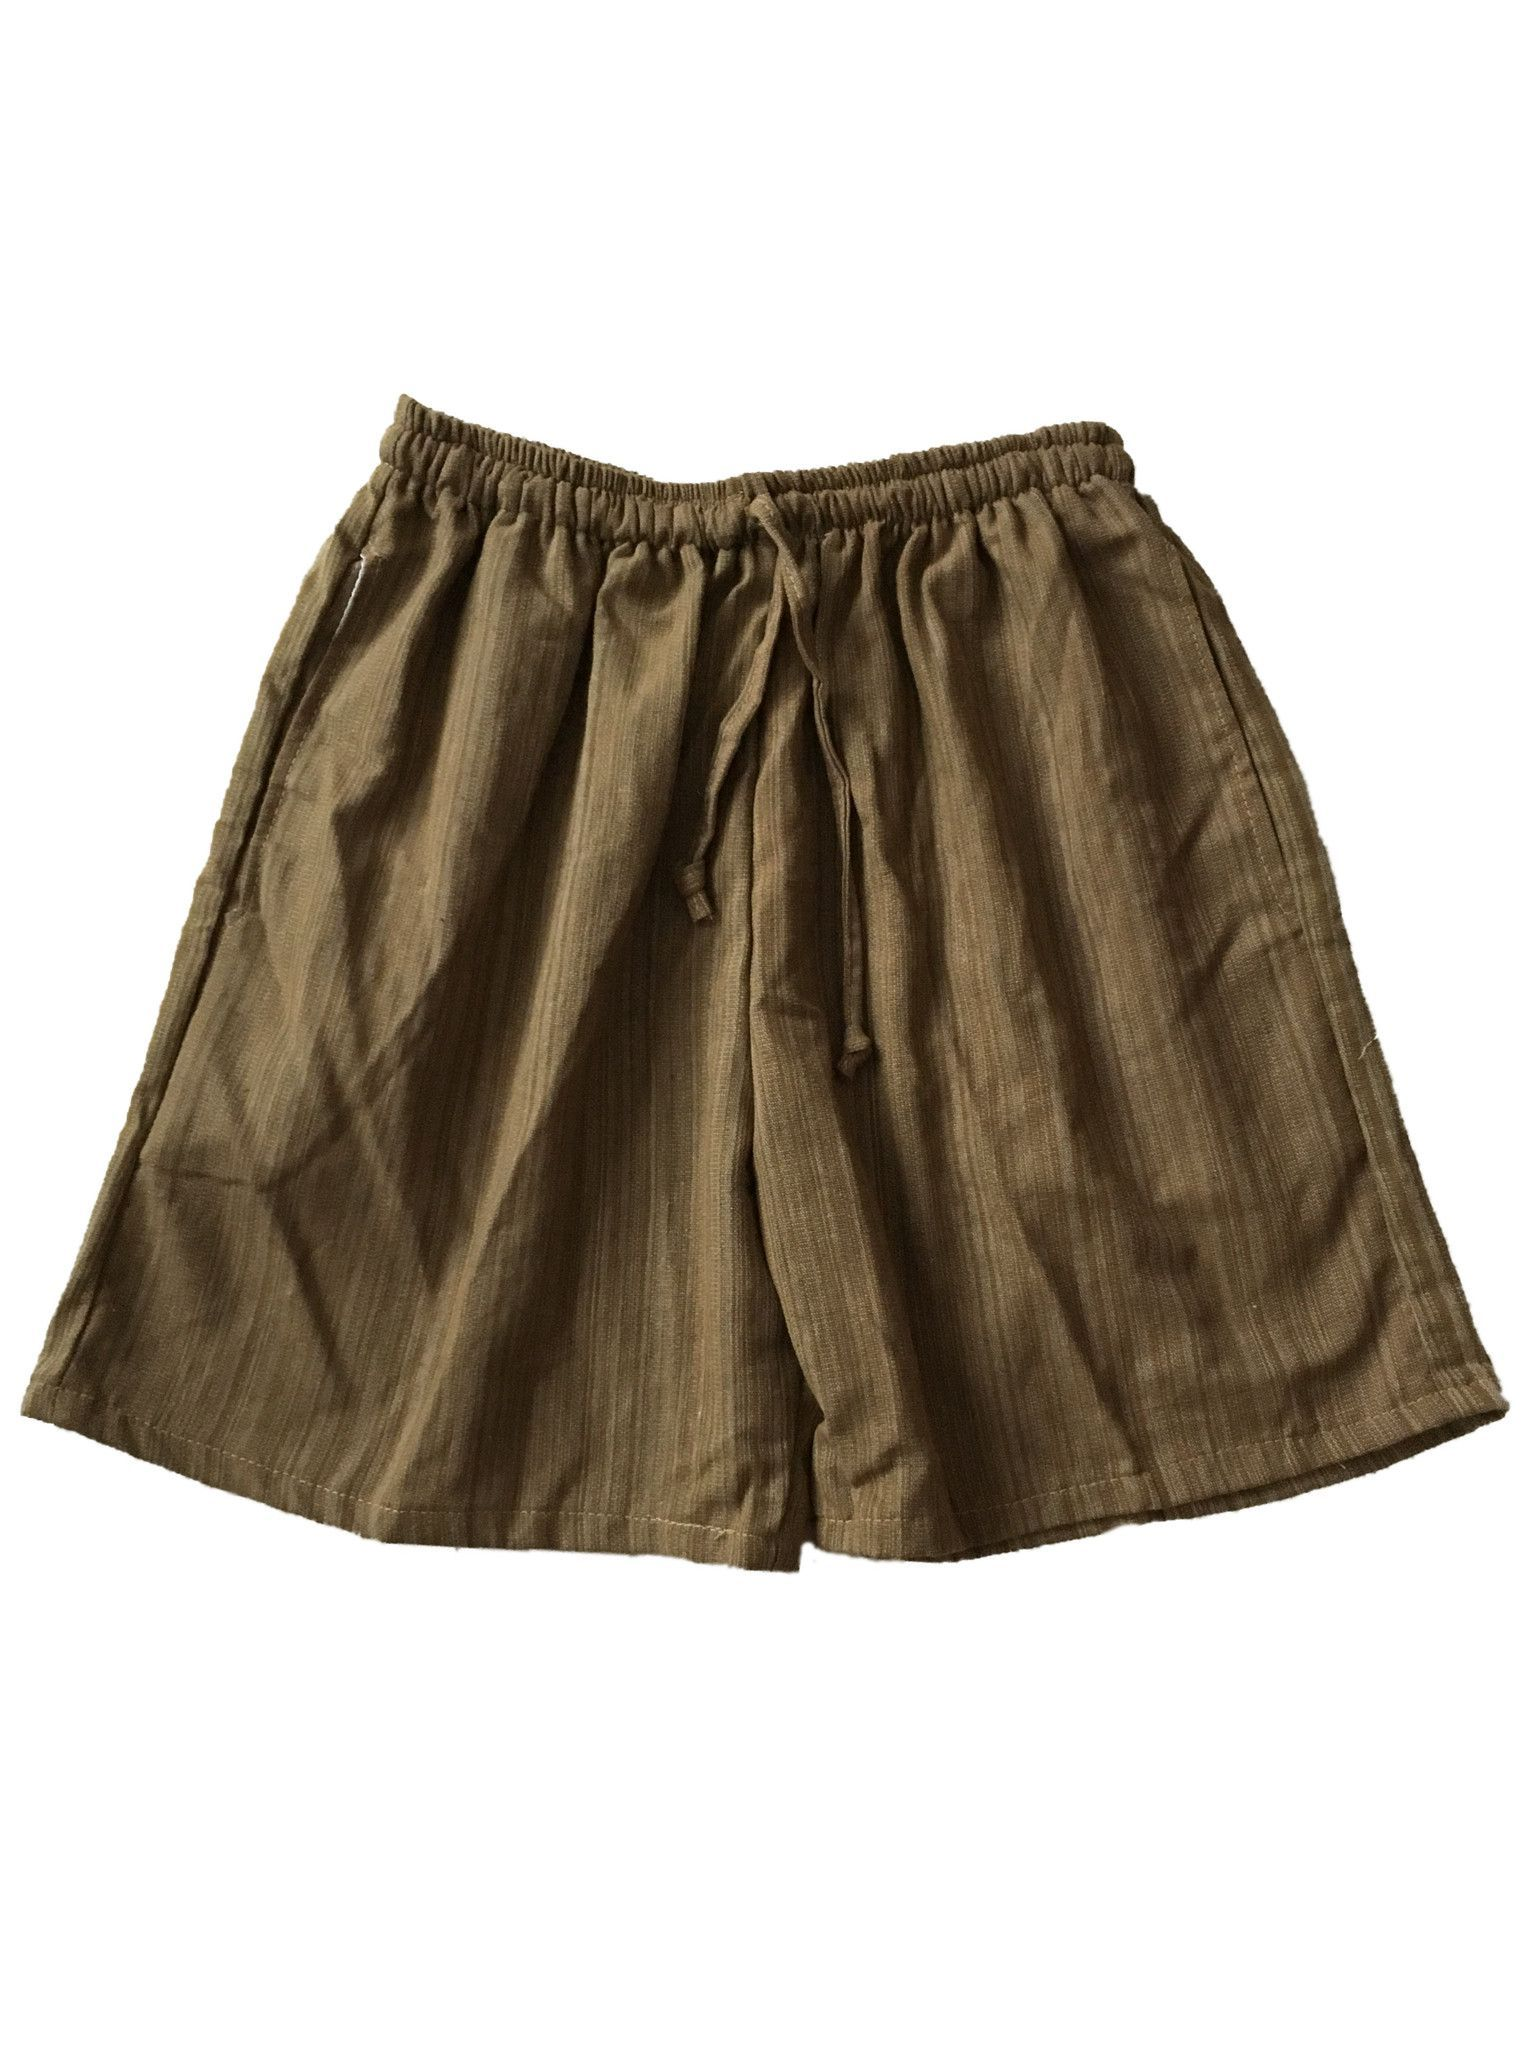 Men's 100% Cotton Shorts Pants